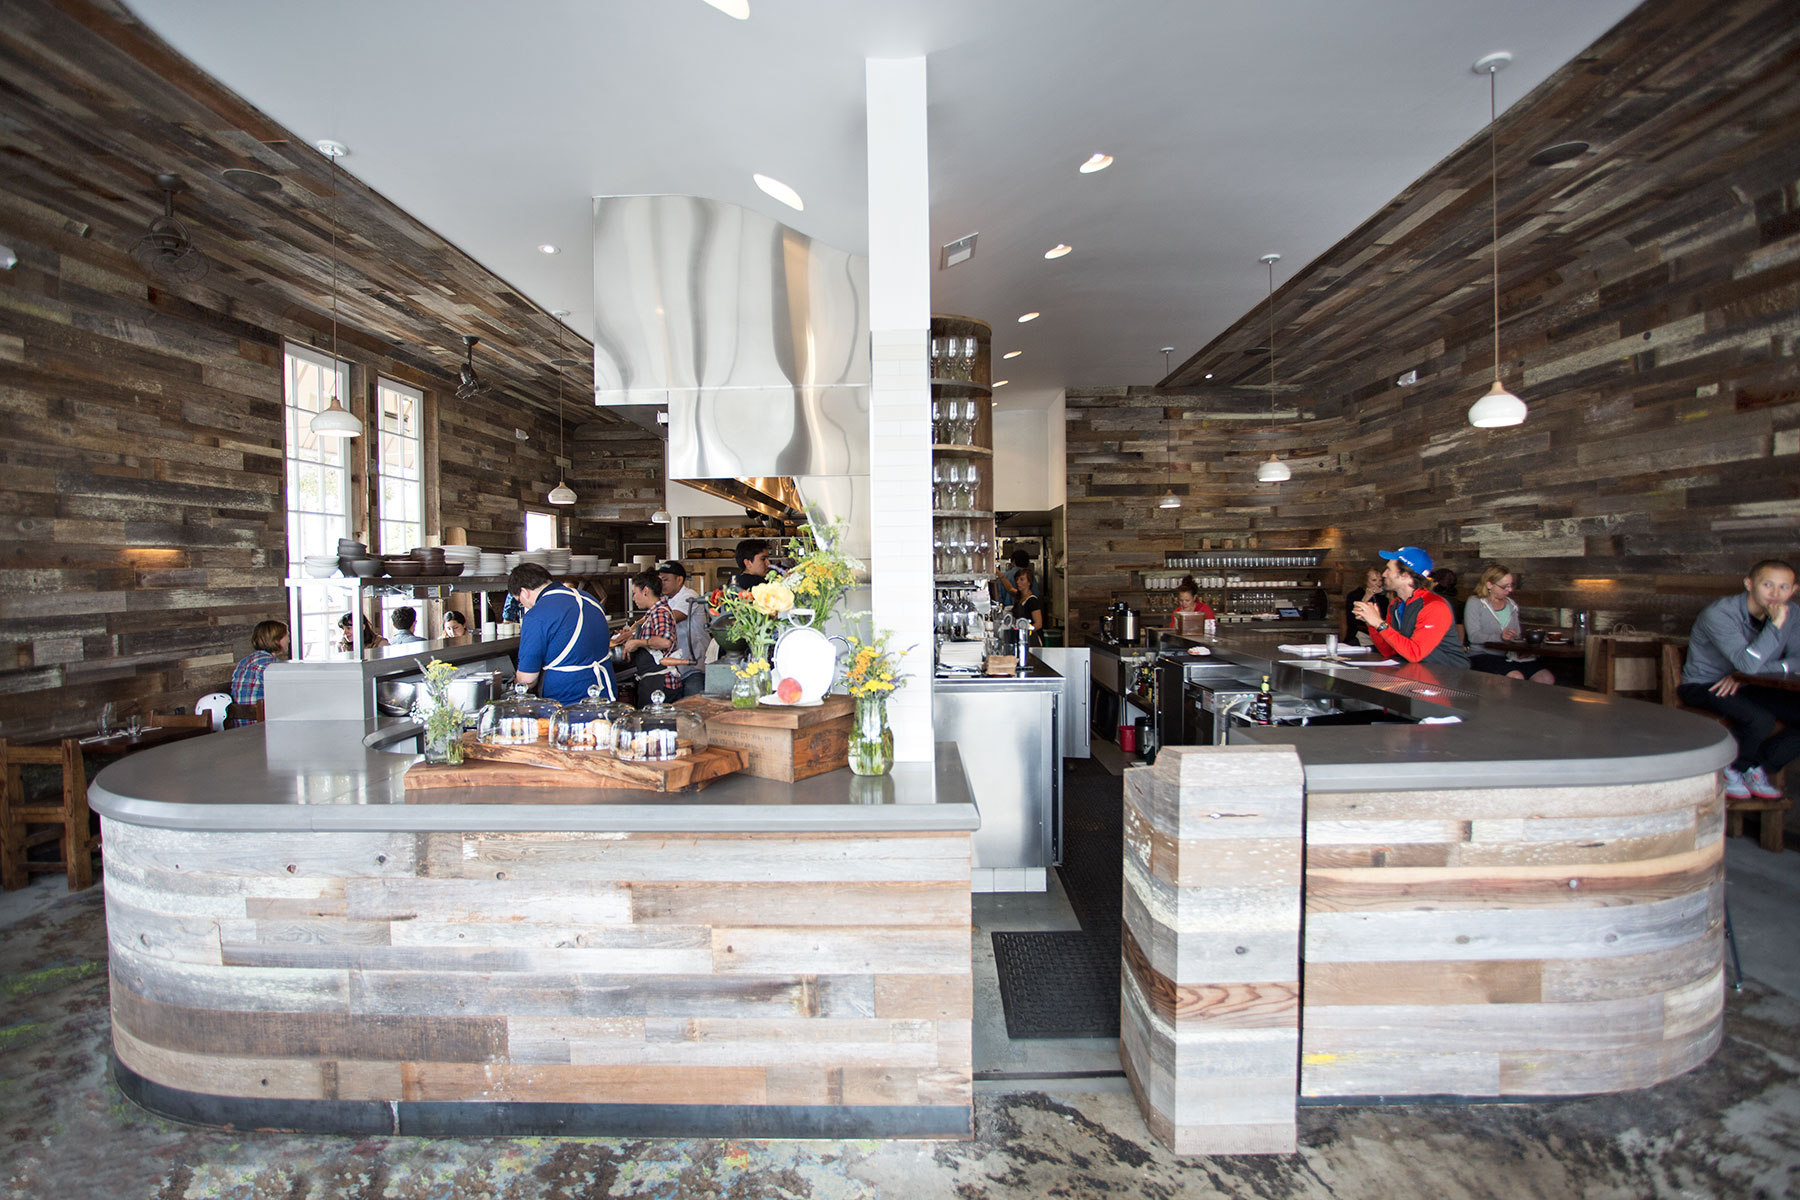 Reclaimed wood tables and a menu composed of locally sourced ingredients make Outerlands on Judah a popular dining option close to the beach.